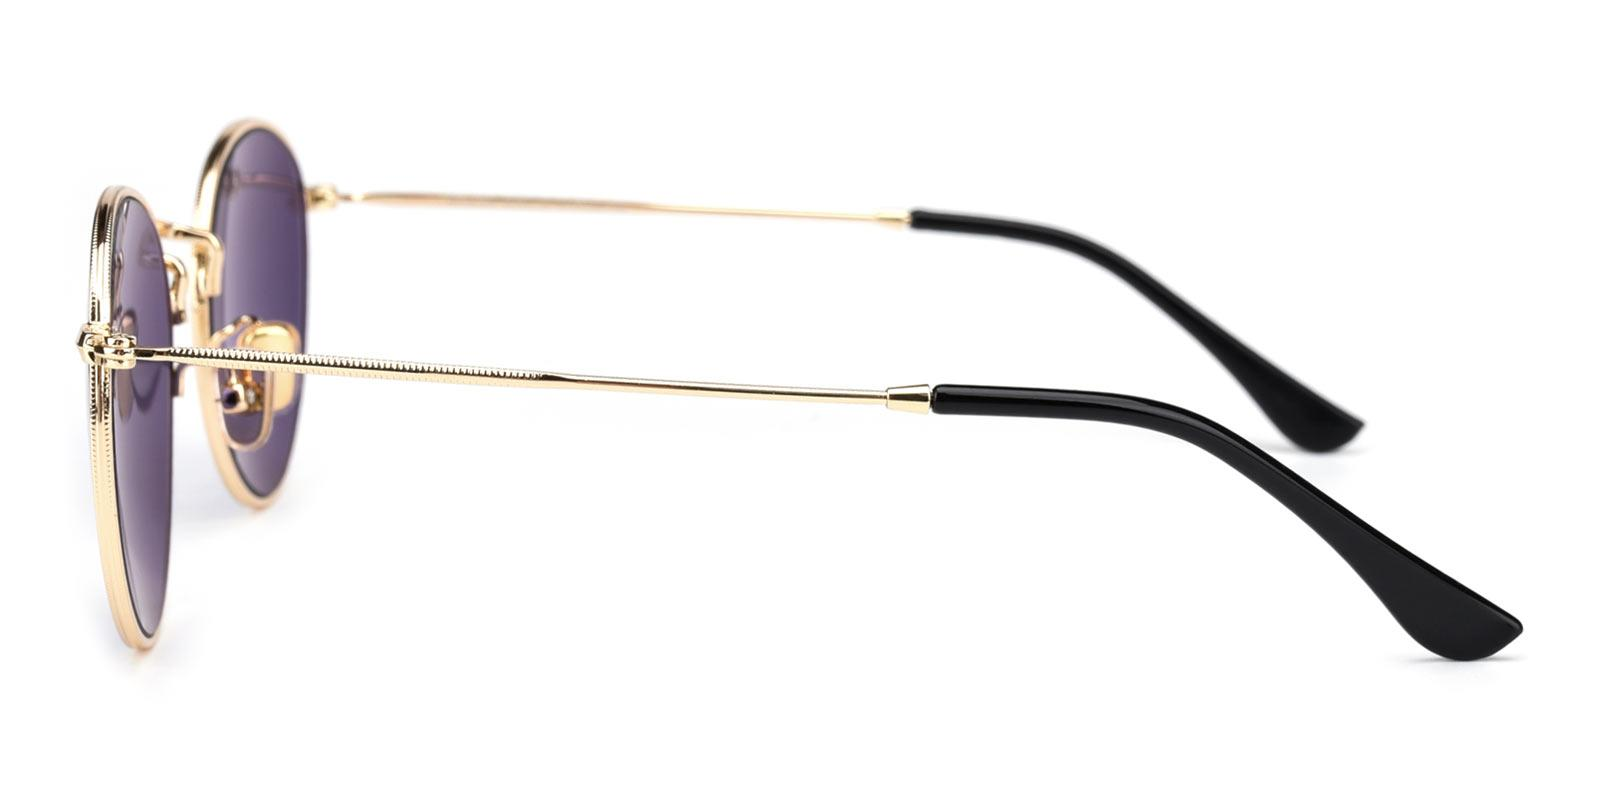 Canary-Gold-Round-Metal-Sunglasses-detail